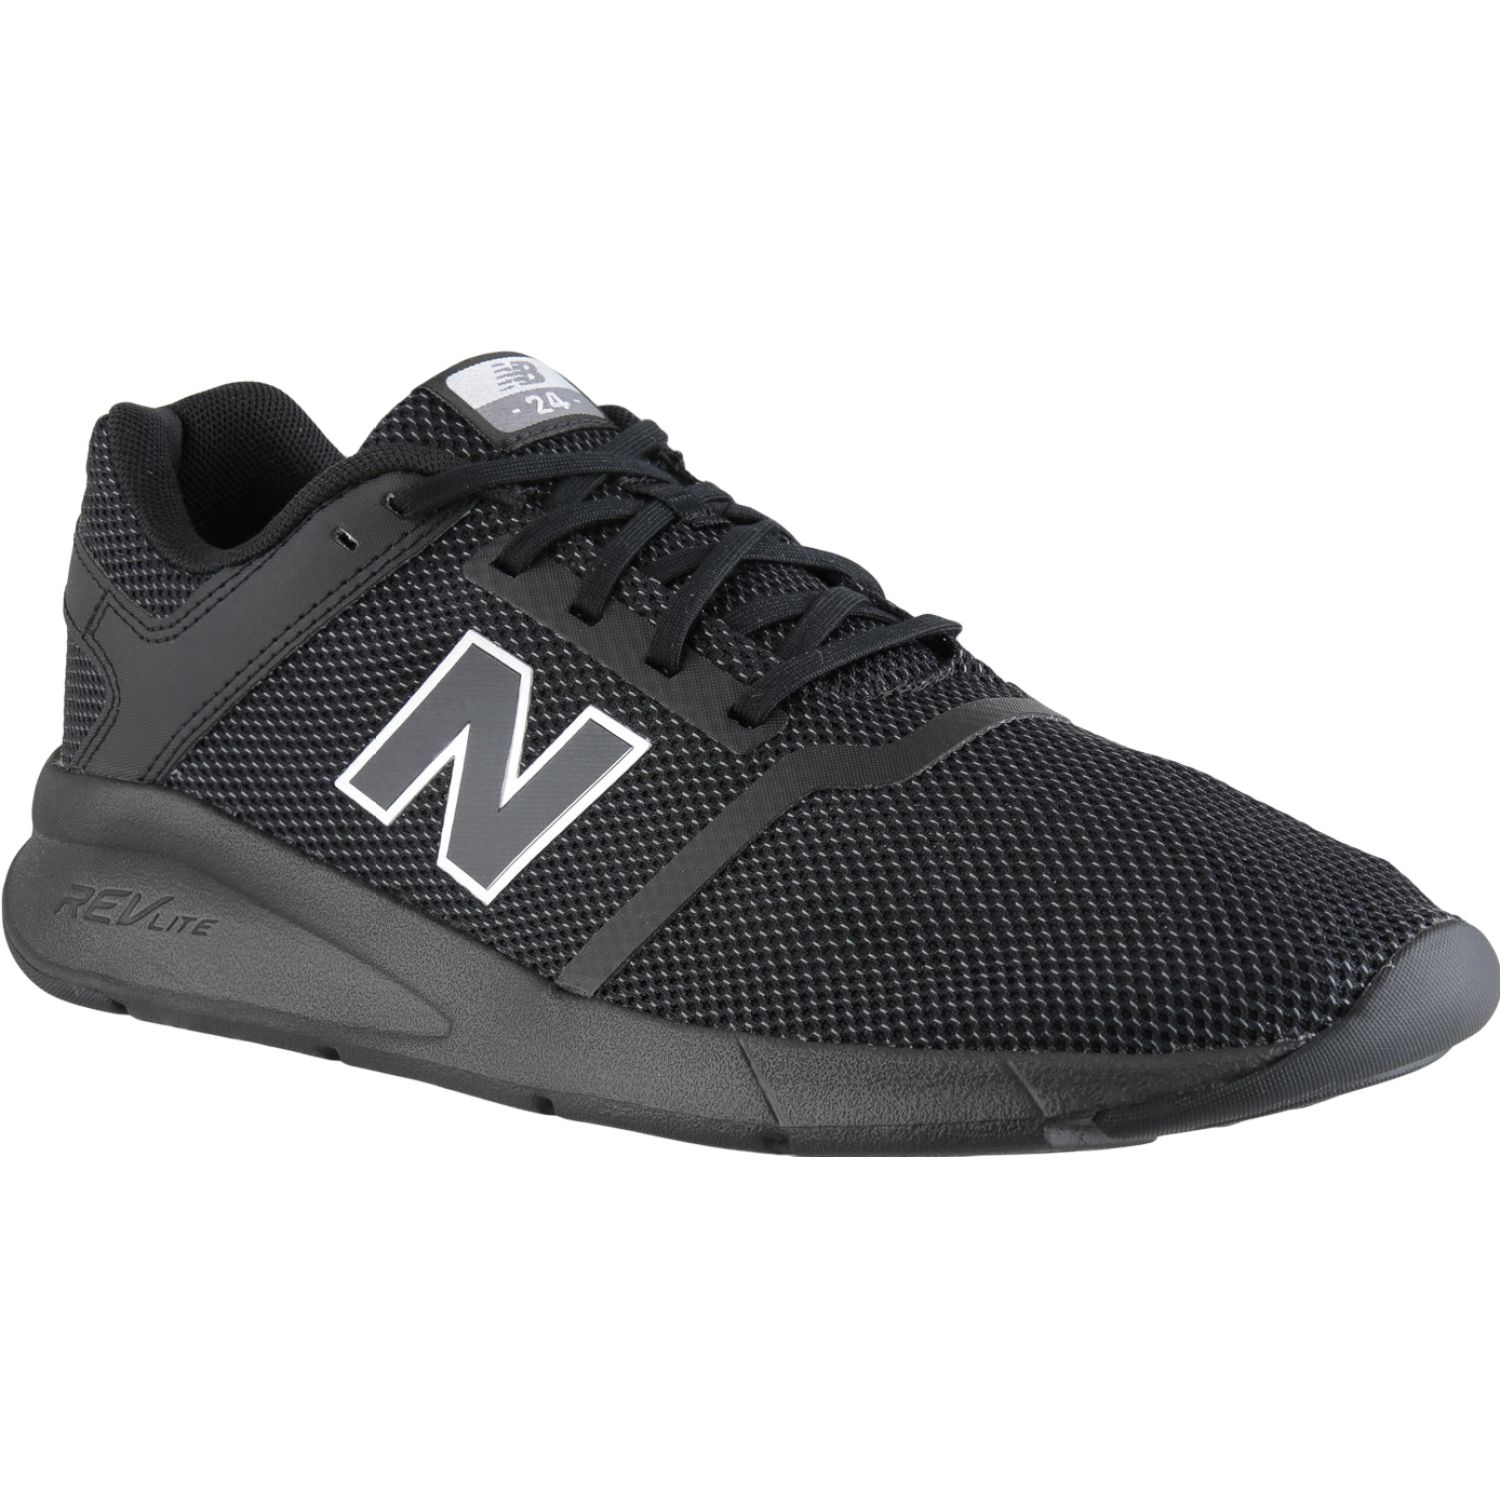 New Balance 24 NEGRO / GRIS Walking